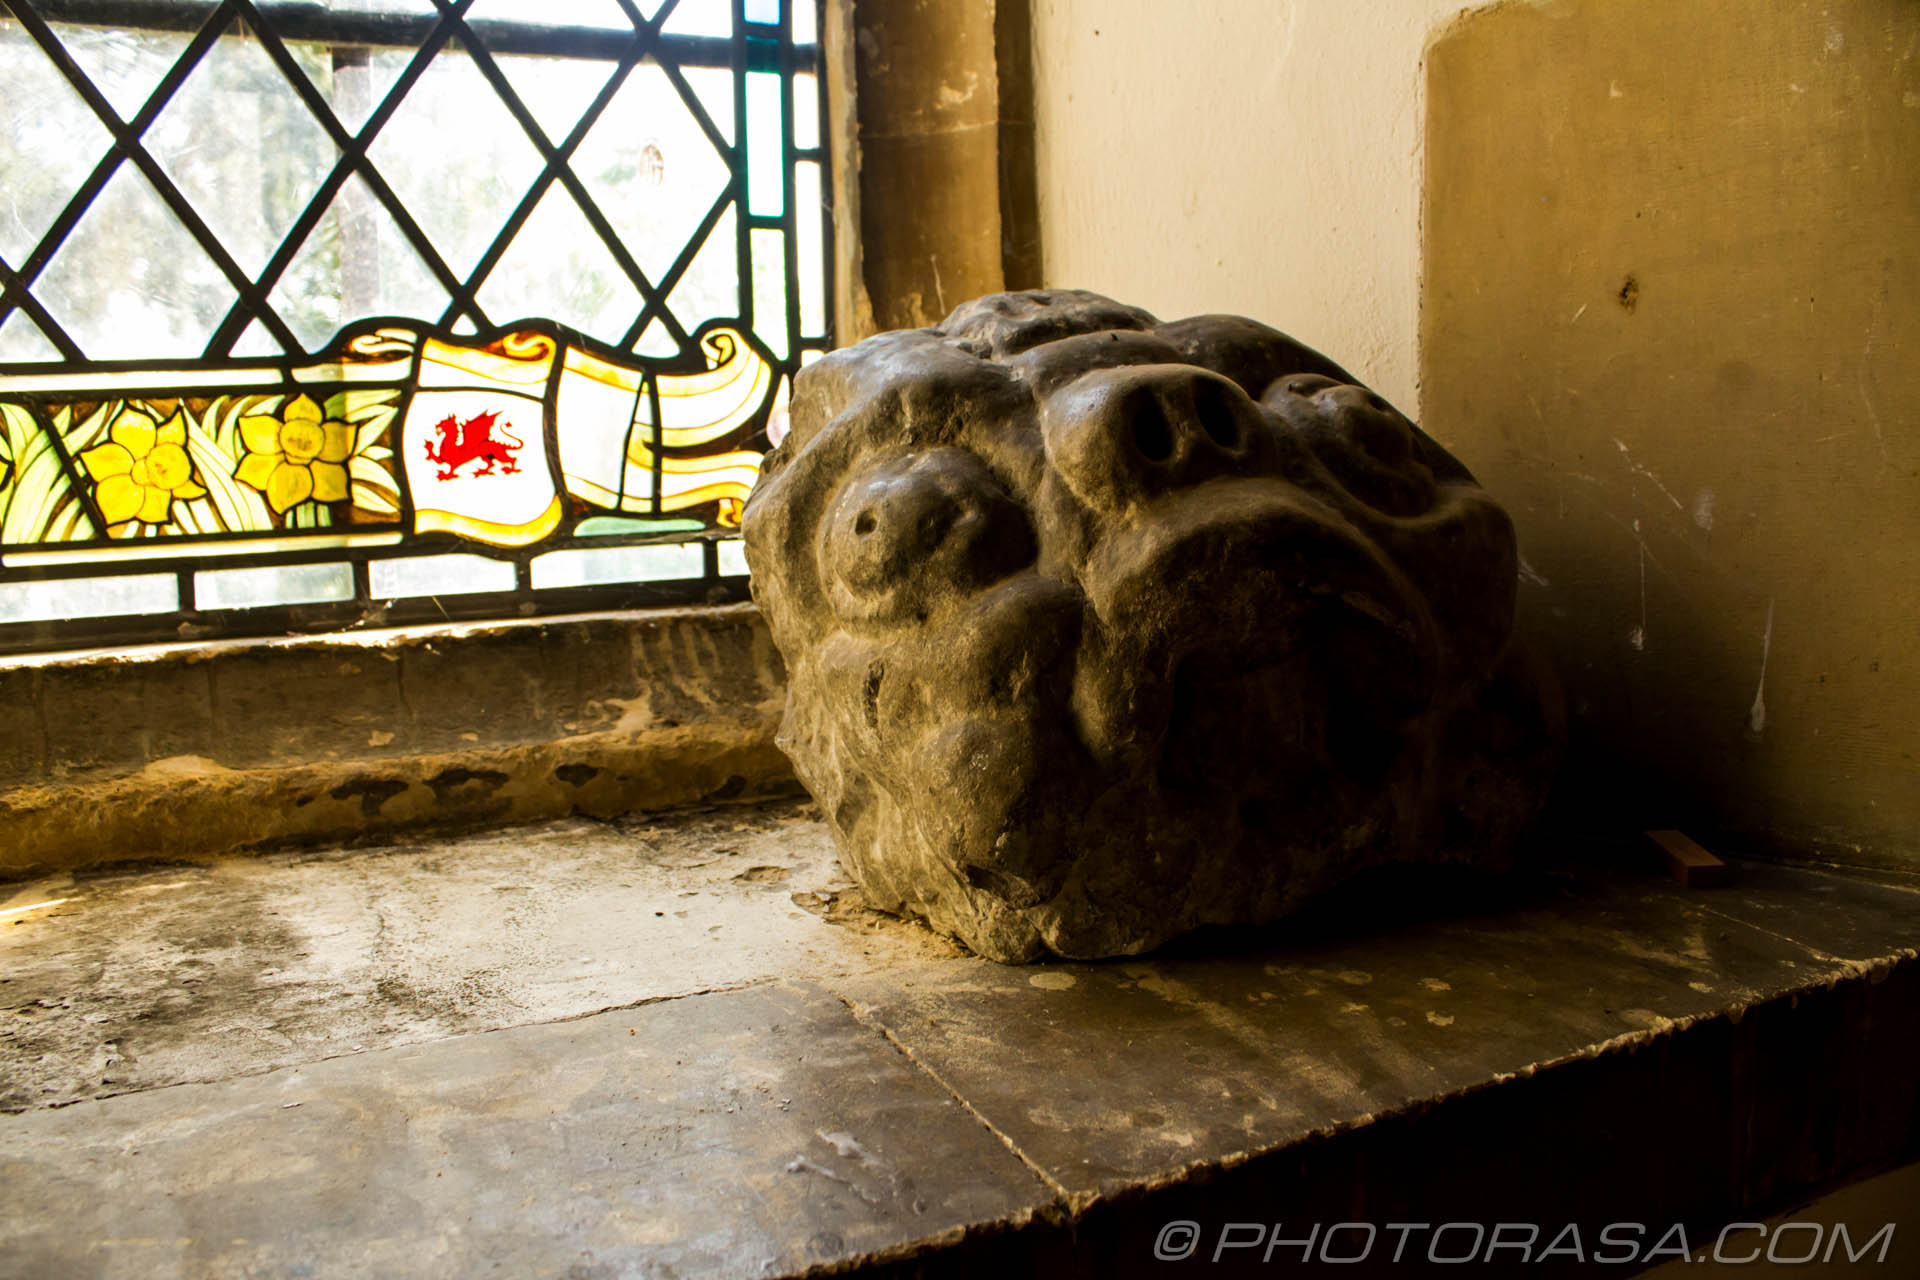 http://photorasa.com/saints-church-staplehurst-kent/stone-monster-face/